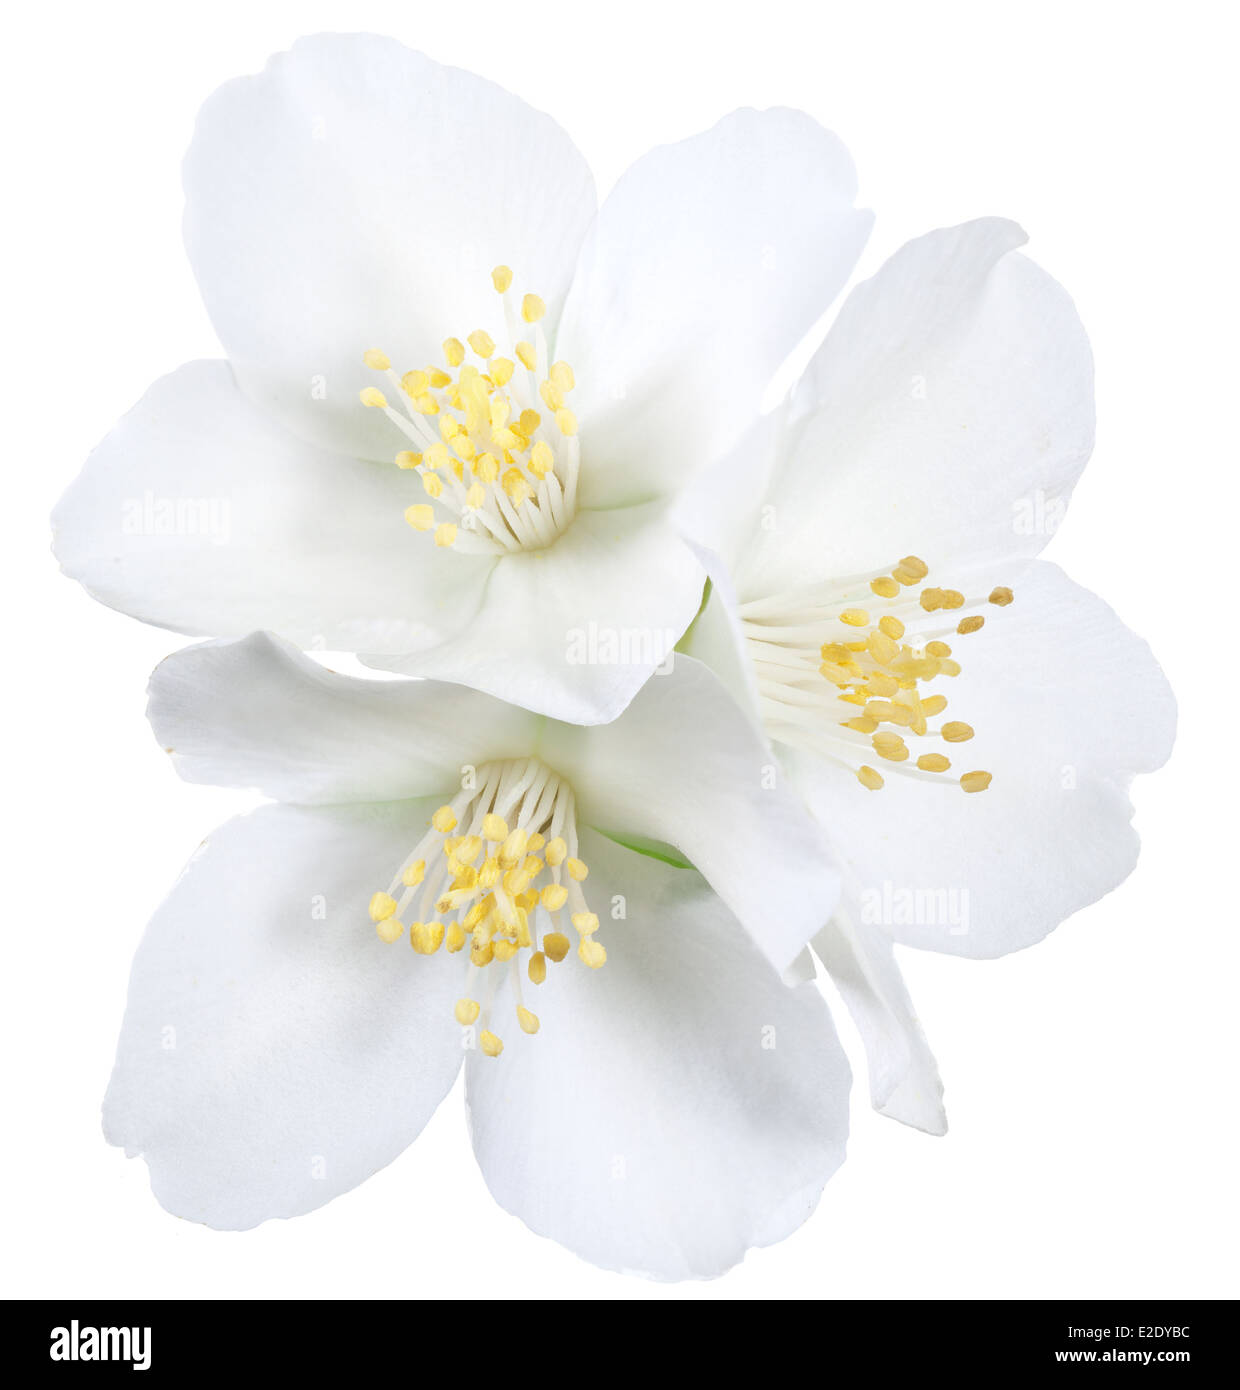 Blooming jasmine flowers. File contains clipping path. - Stock Image